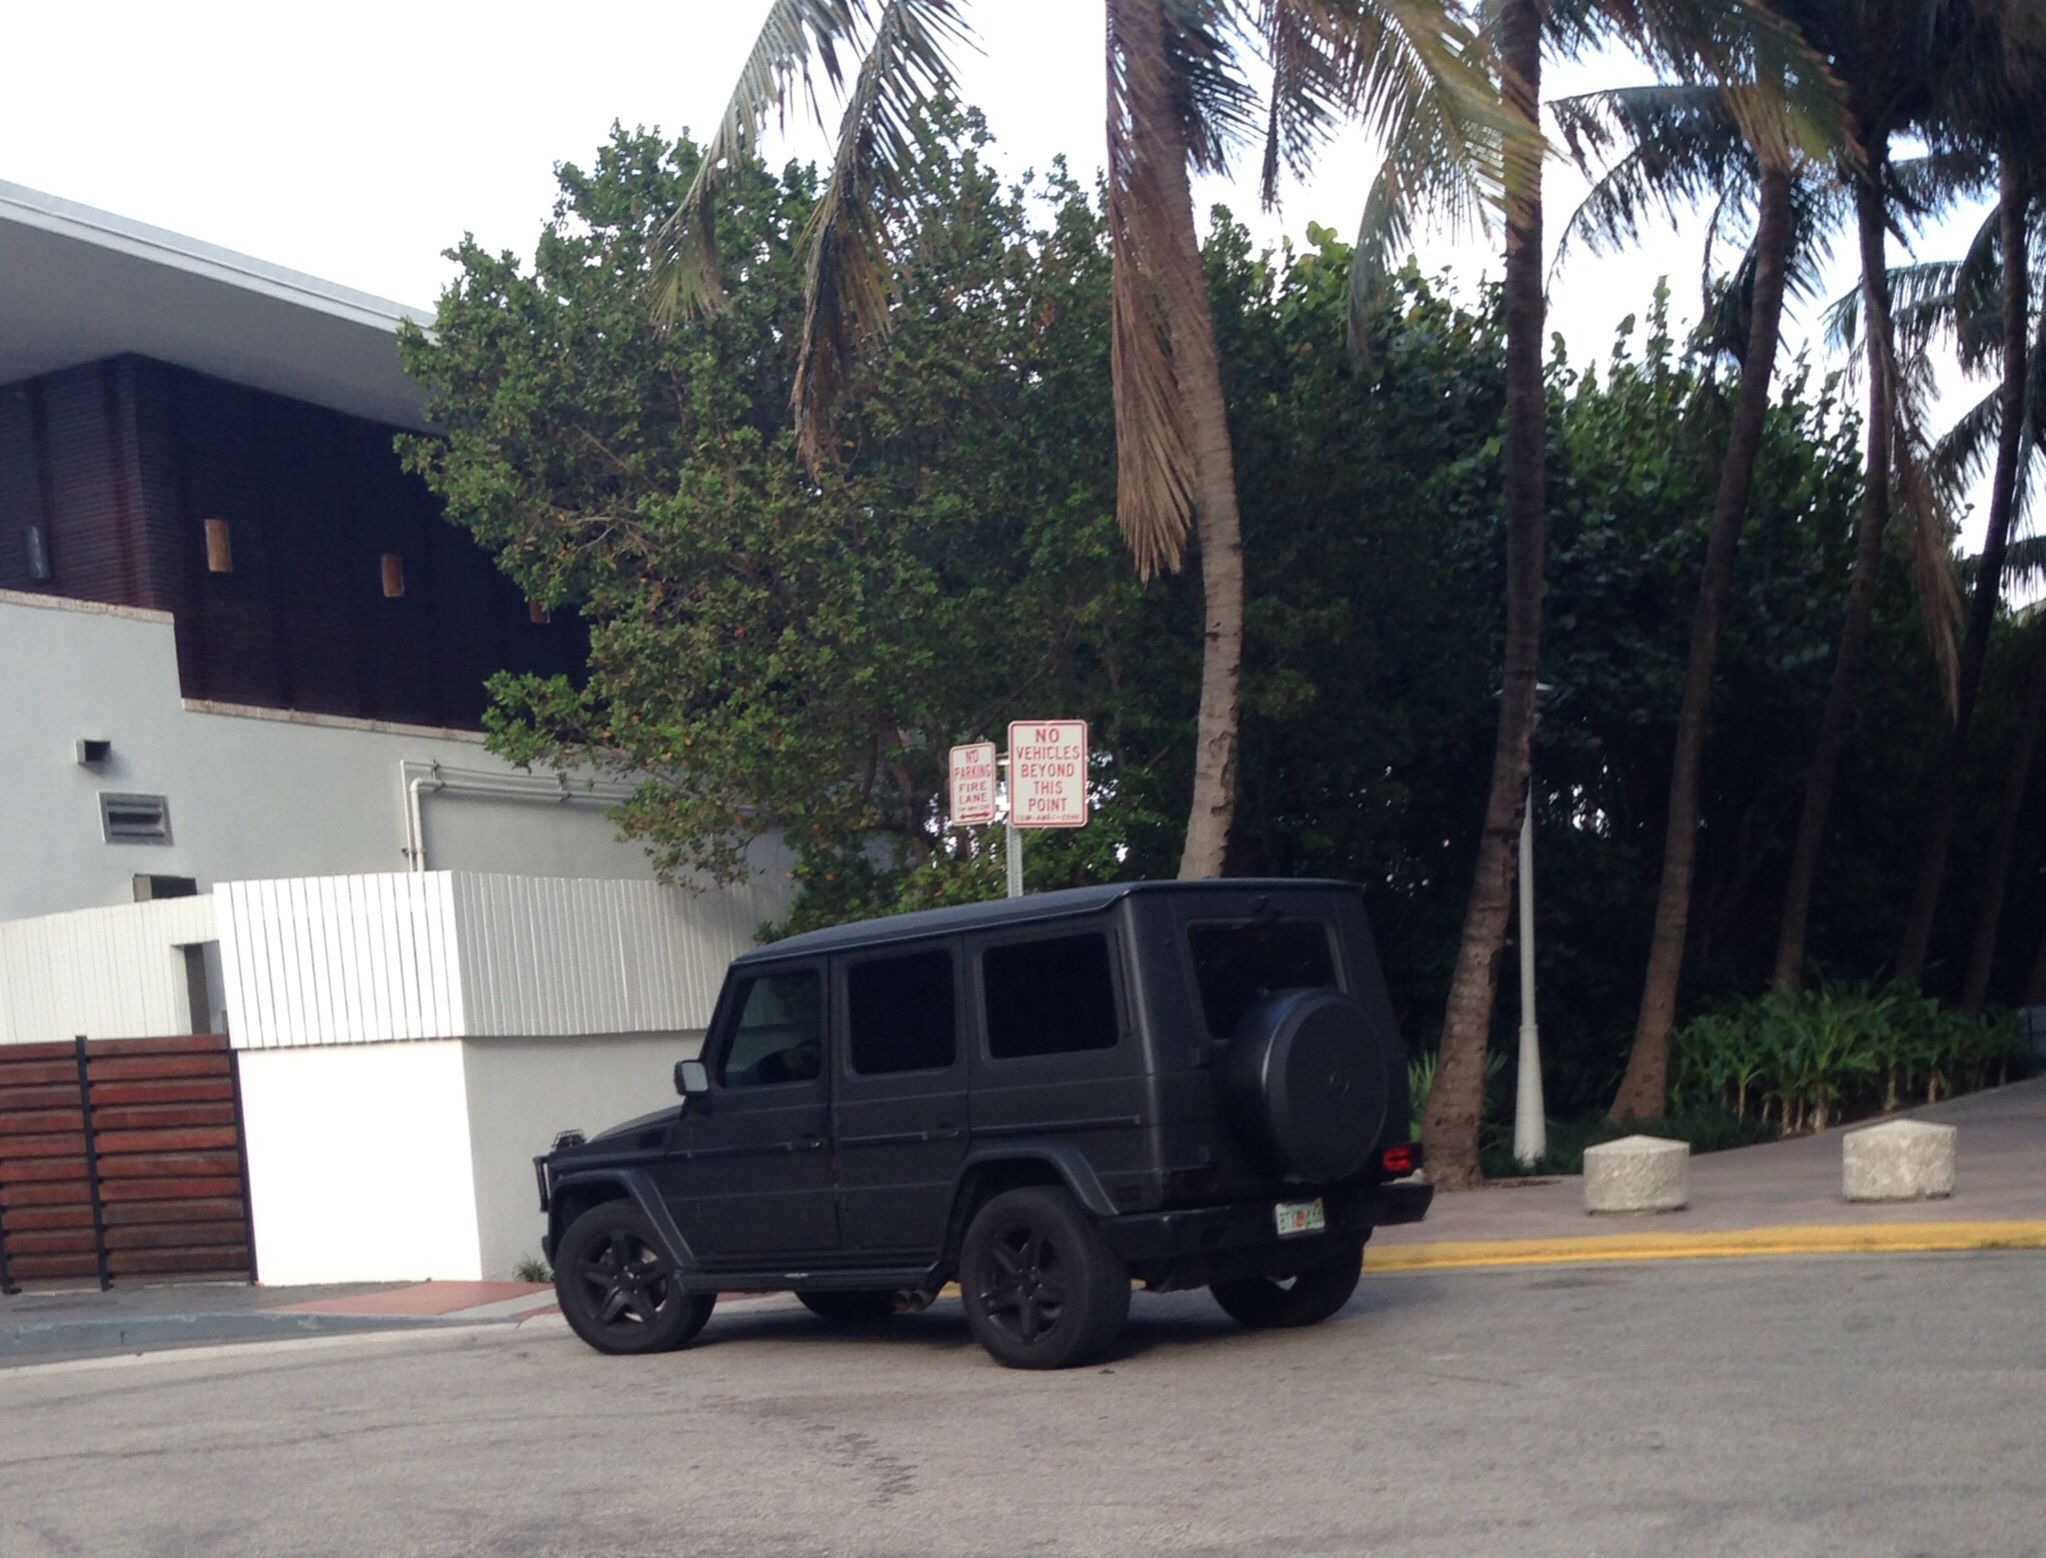 matte blacked out mercedes g wagon cars pinterest matte black cars and zoom zoom. Black Bedroom Furniture Sets. Home Design Ideas